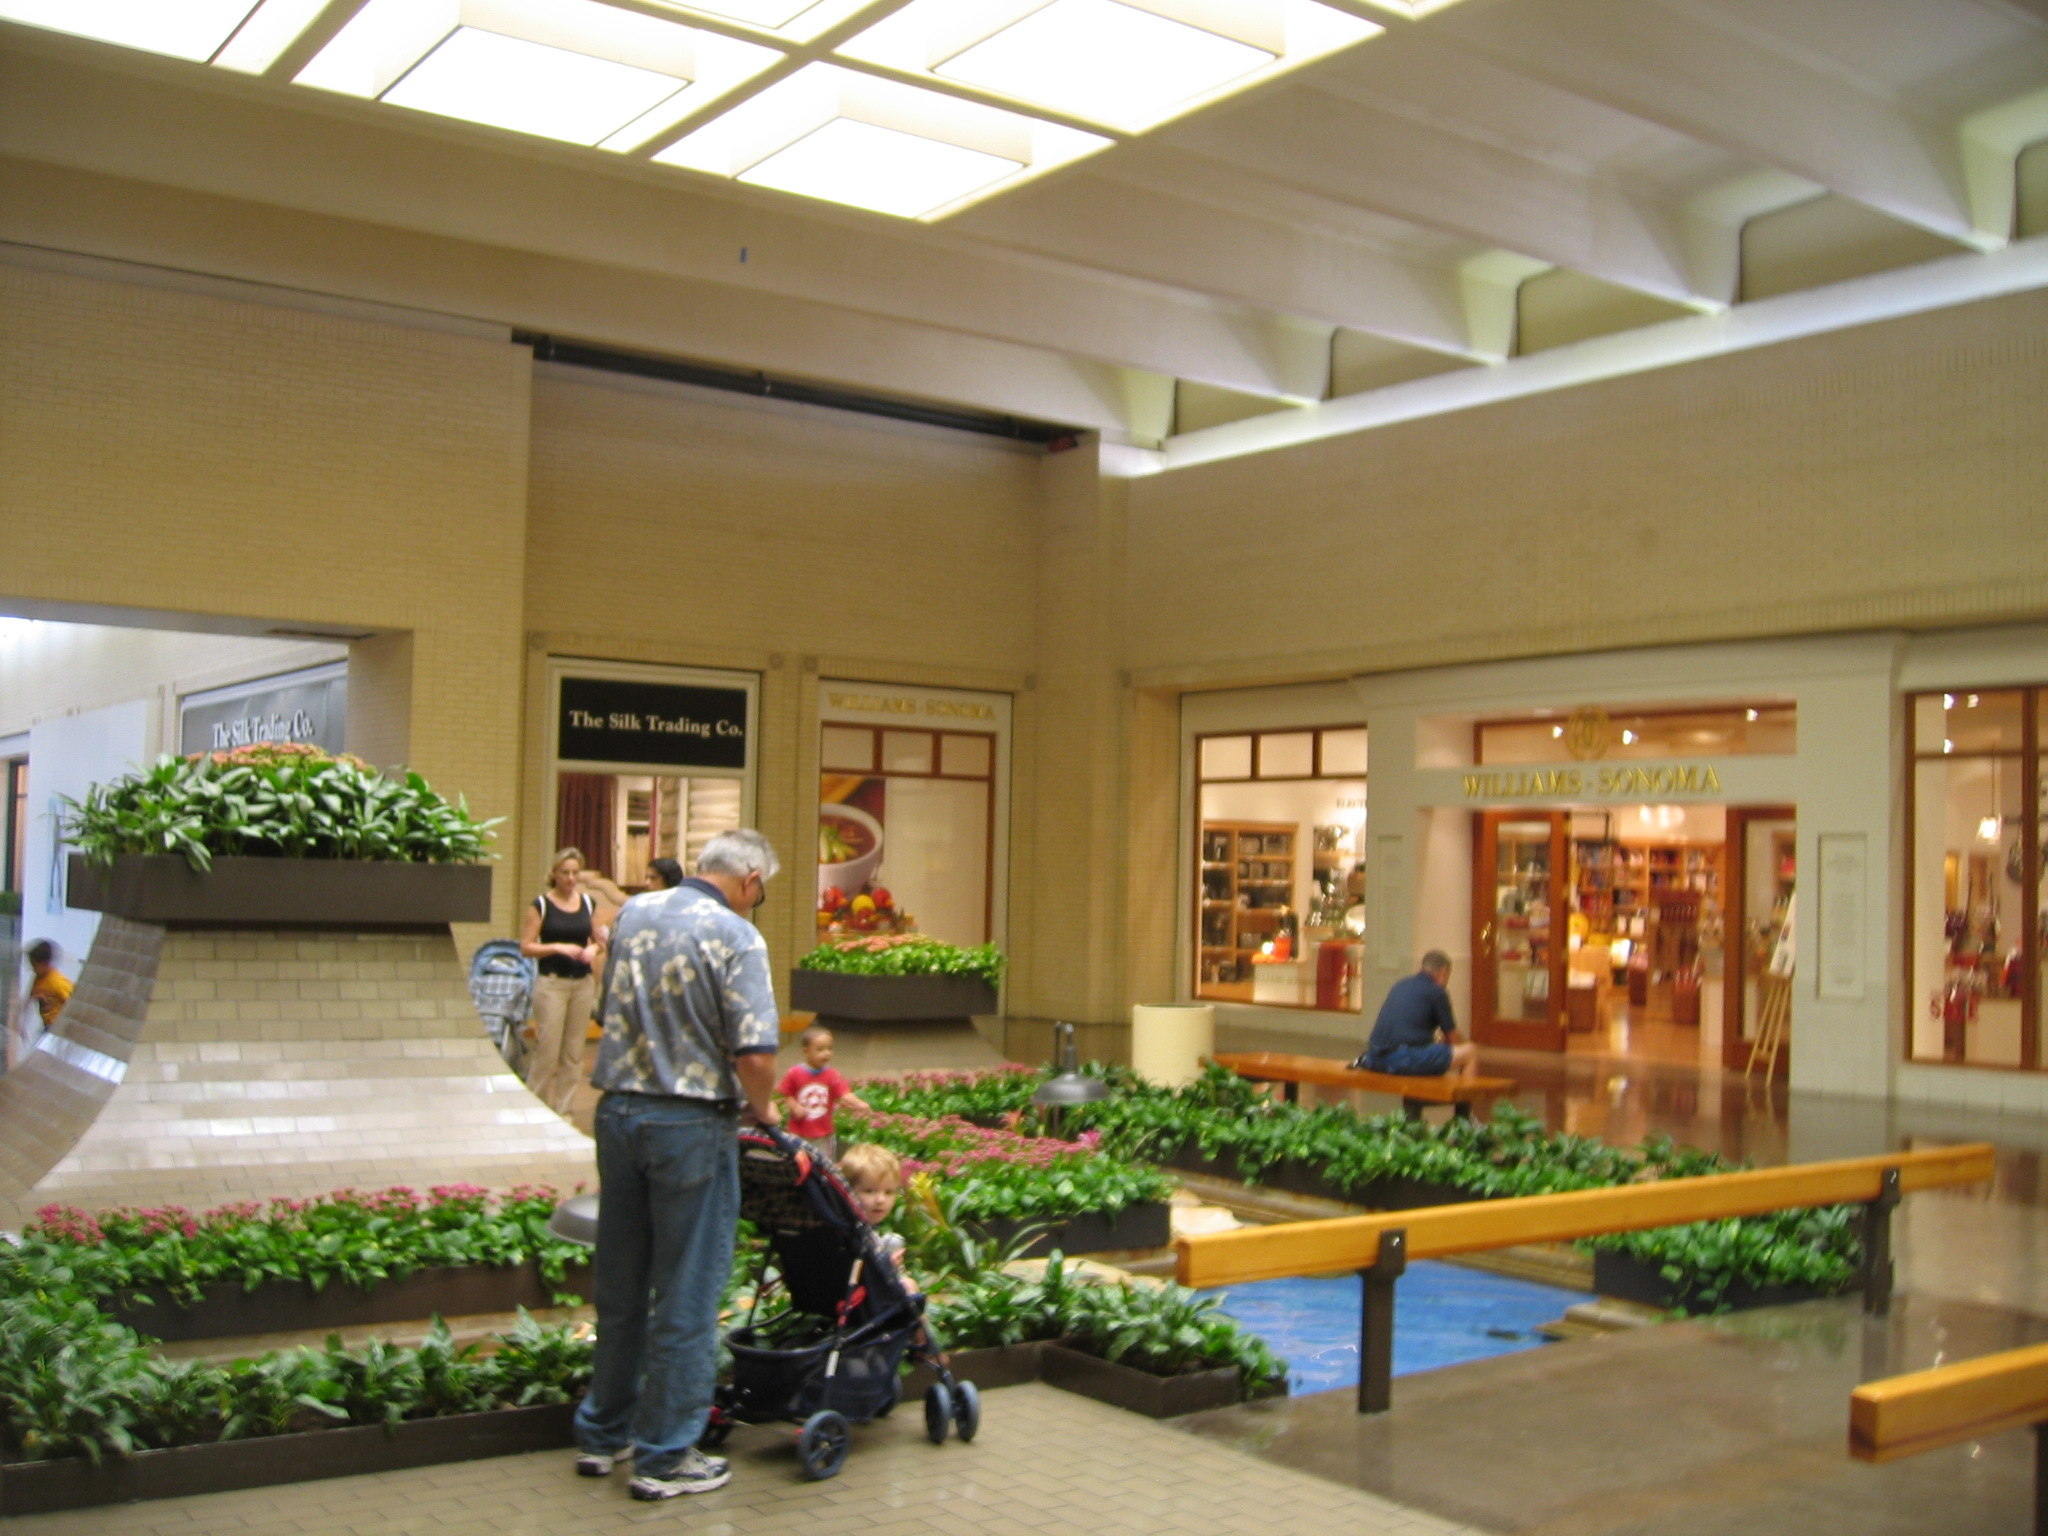 northpark-center-05.JPG